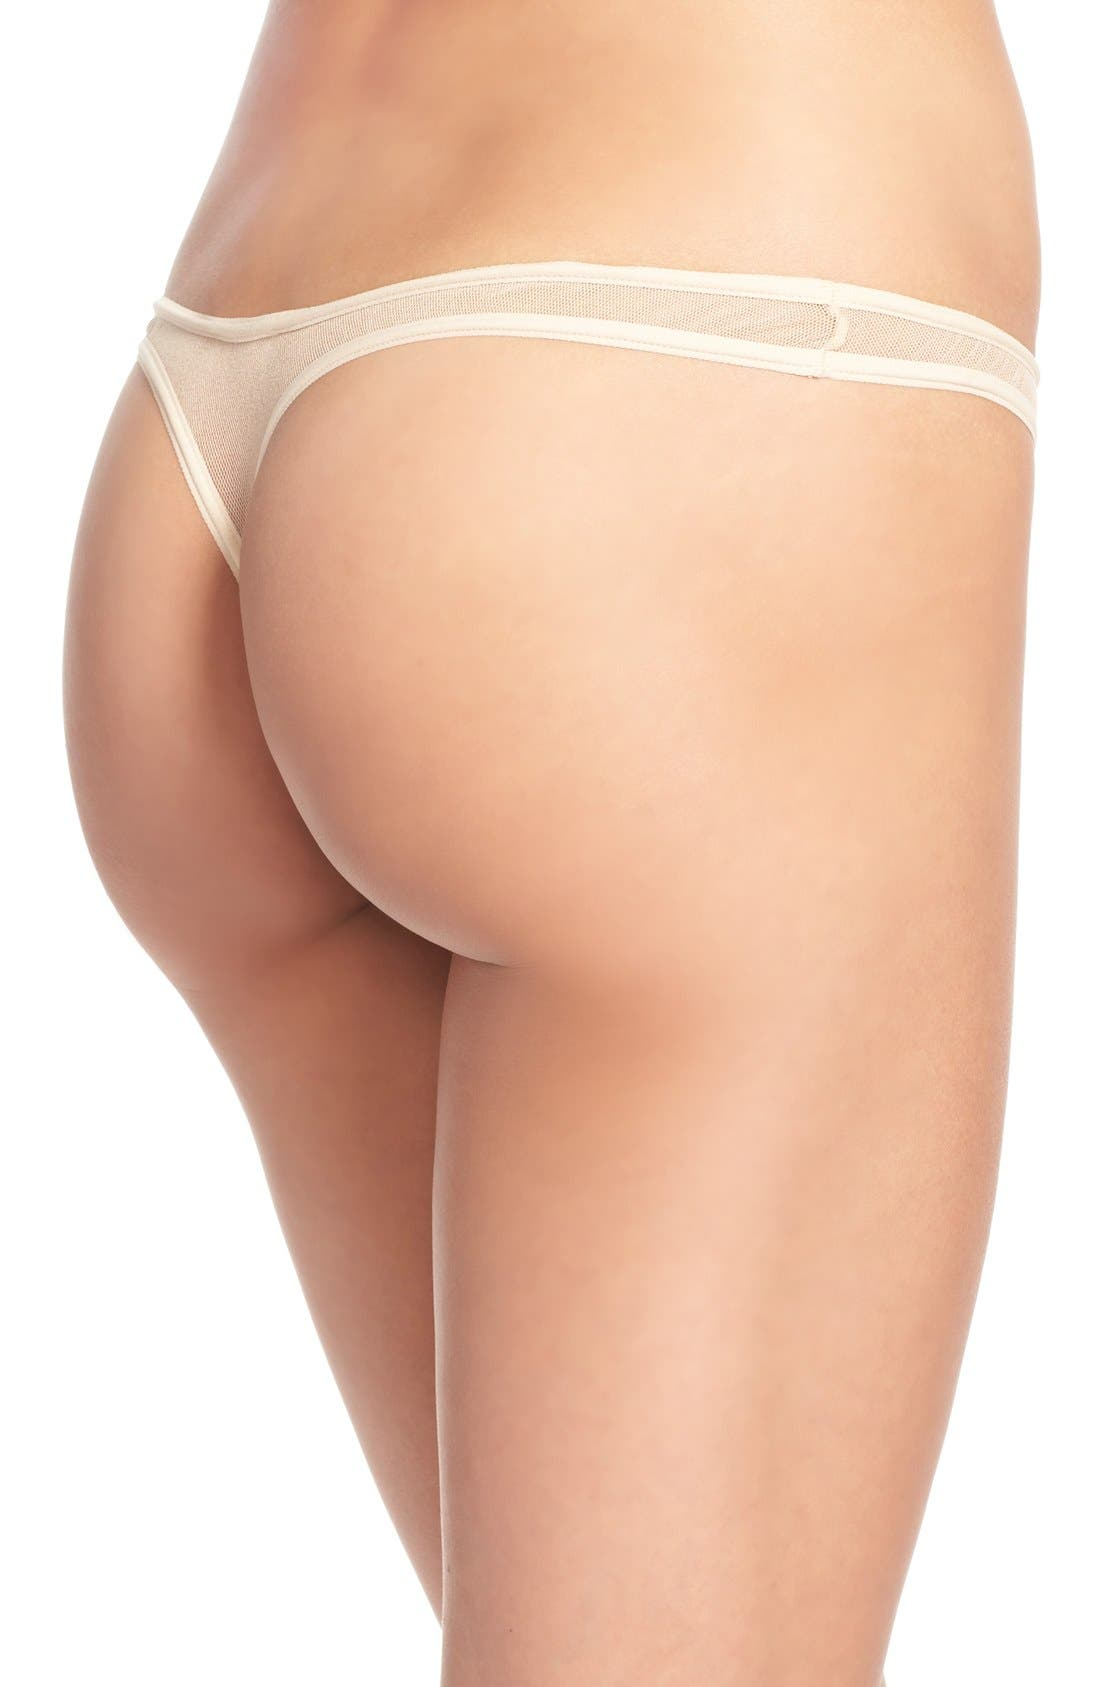 'Soire' Low Rise Mesh Thong,                             Alternate thumbnail 2, color,                             Blush